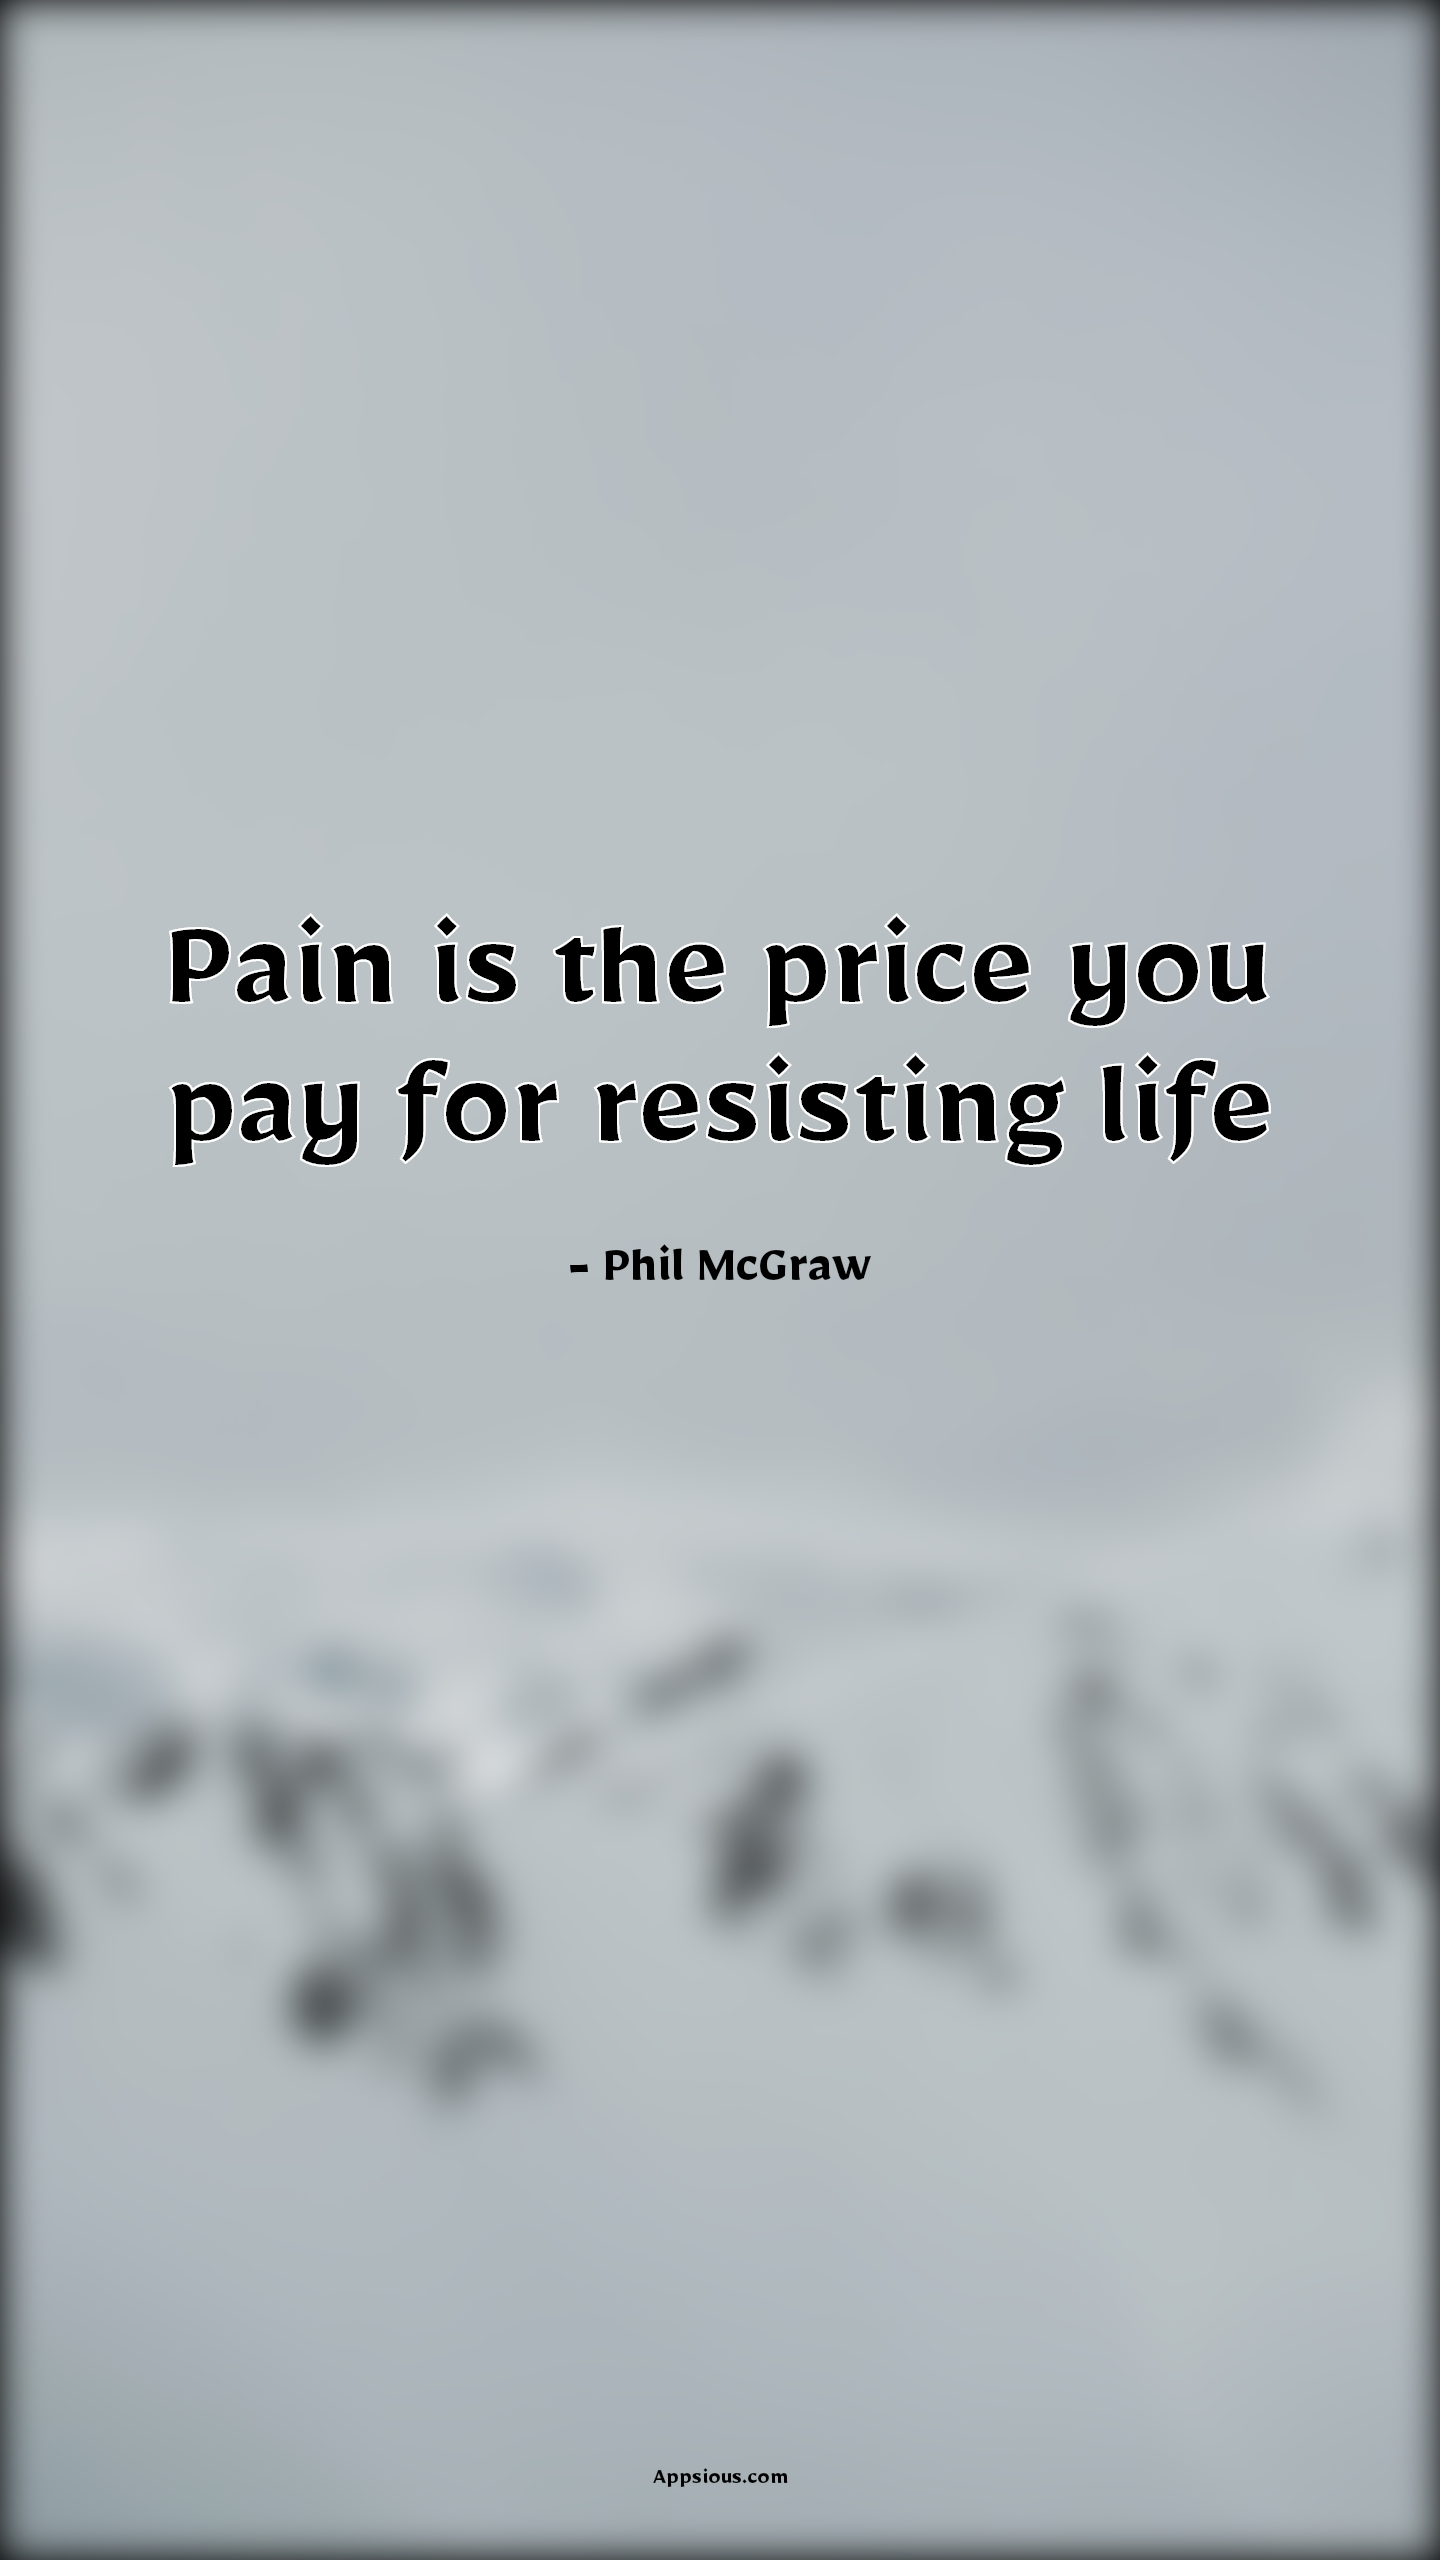 Pain is the price you pay for resisting life